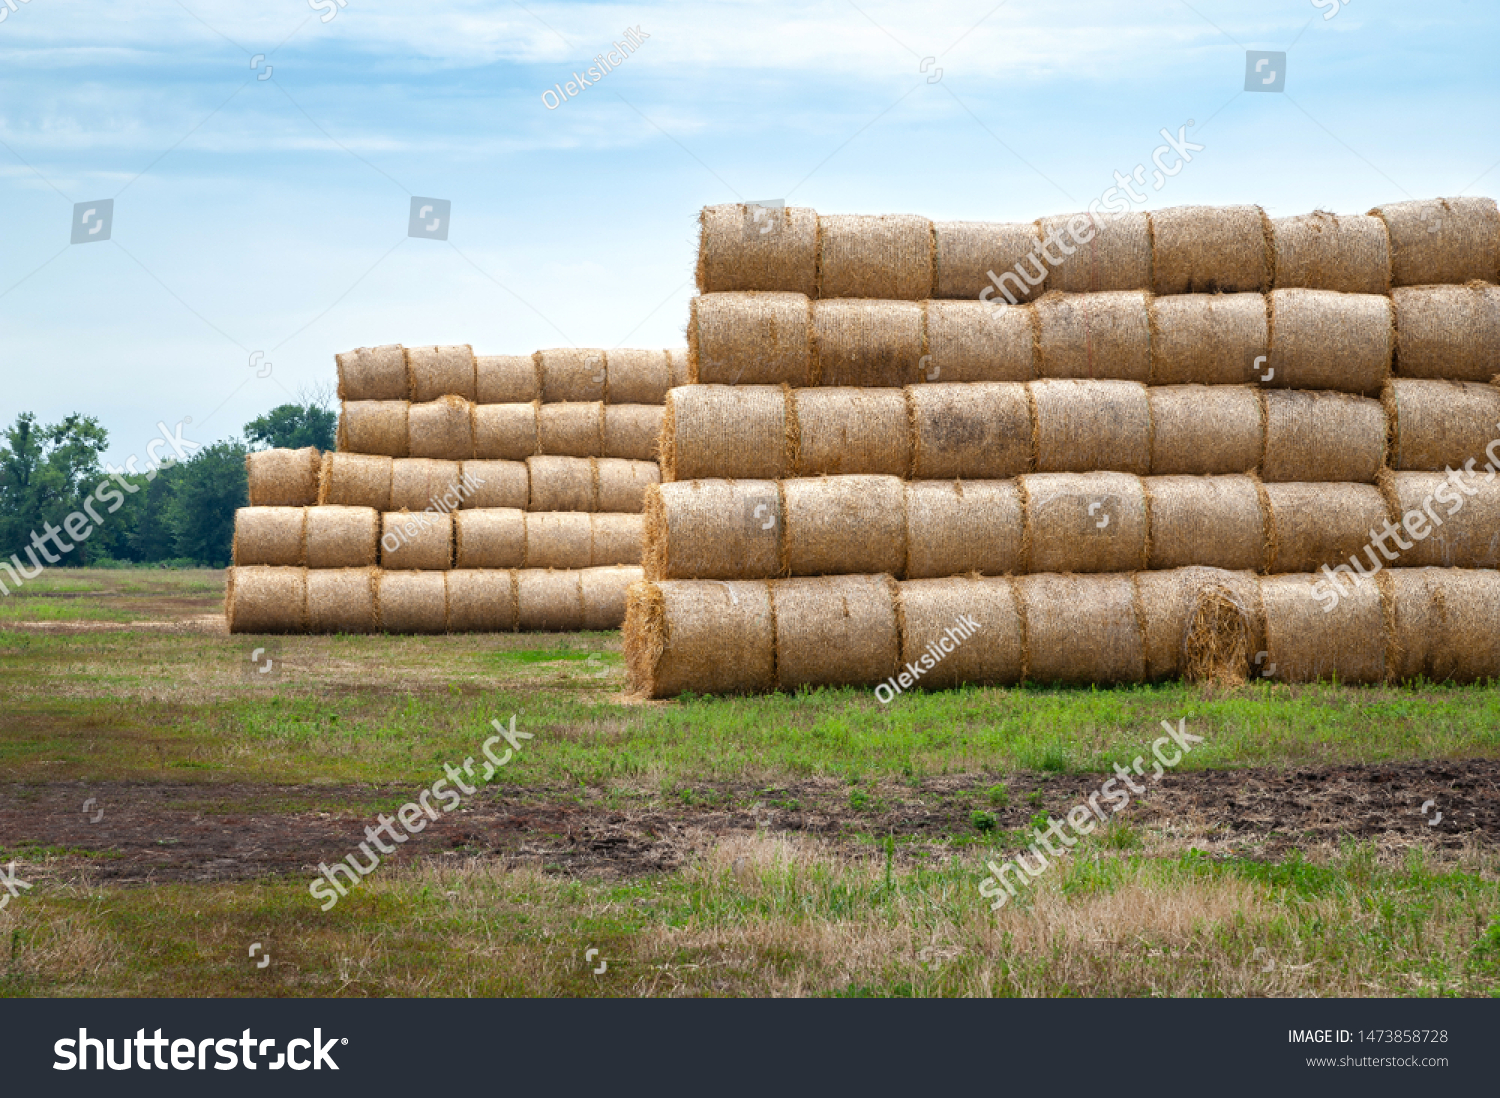 Hay bales. Hay bales are stacked on the field in stacks. Harvesting in agriculture. #1473858728